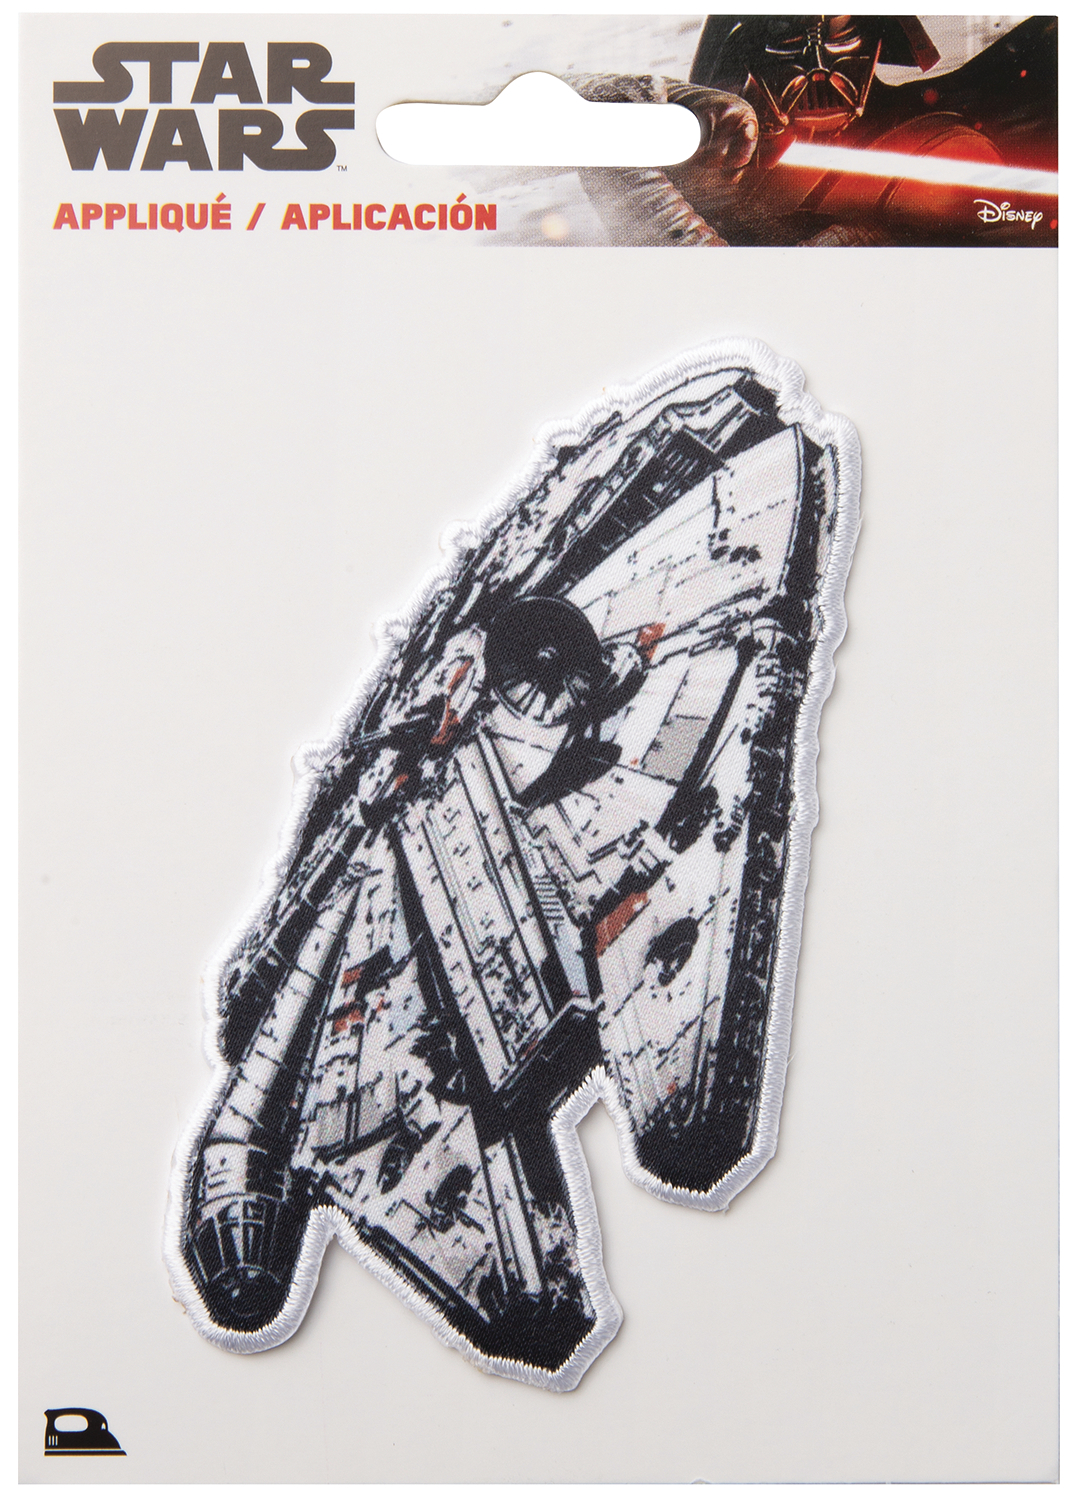 STAR WARS MILLENNIUM FALCON PATCH